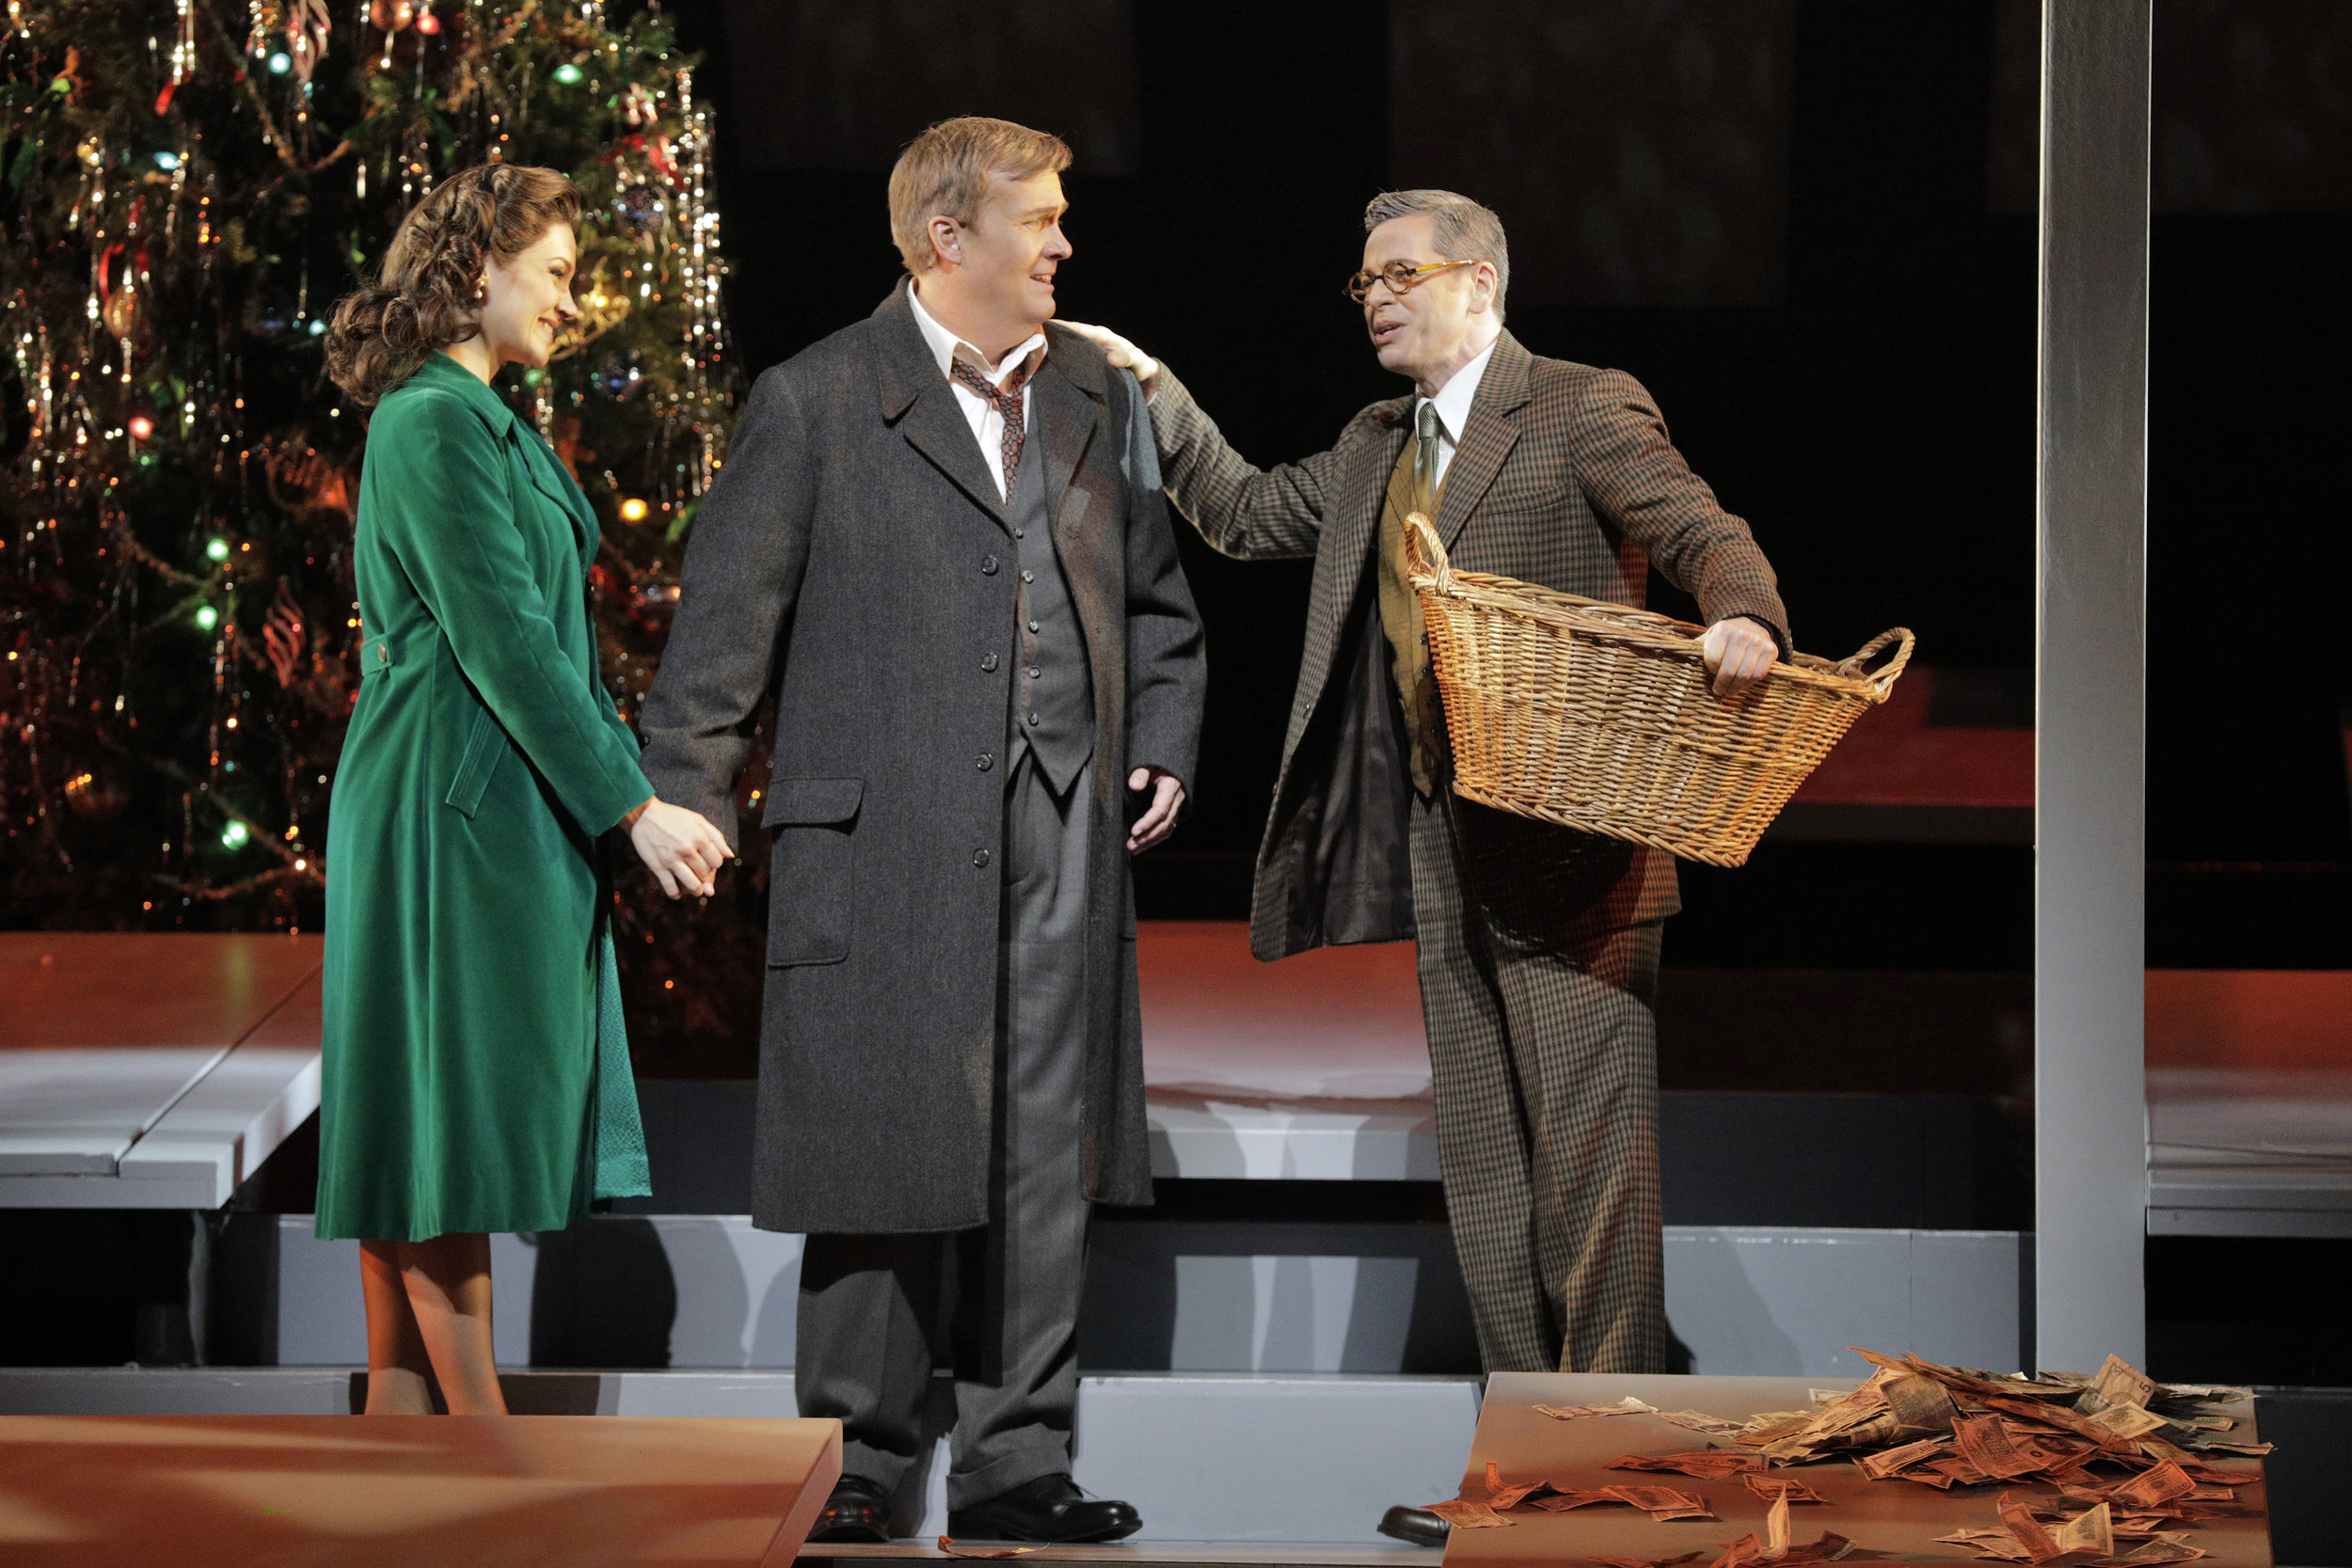 Andriana Chuchman as Mary Hatch, William Burden as George Bailey and Keith Jameson as Uncle Billy Bailey